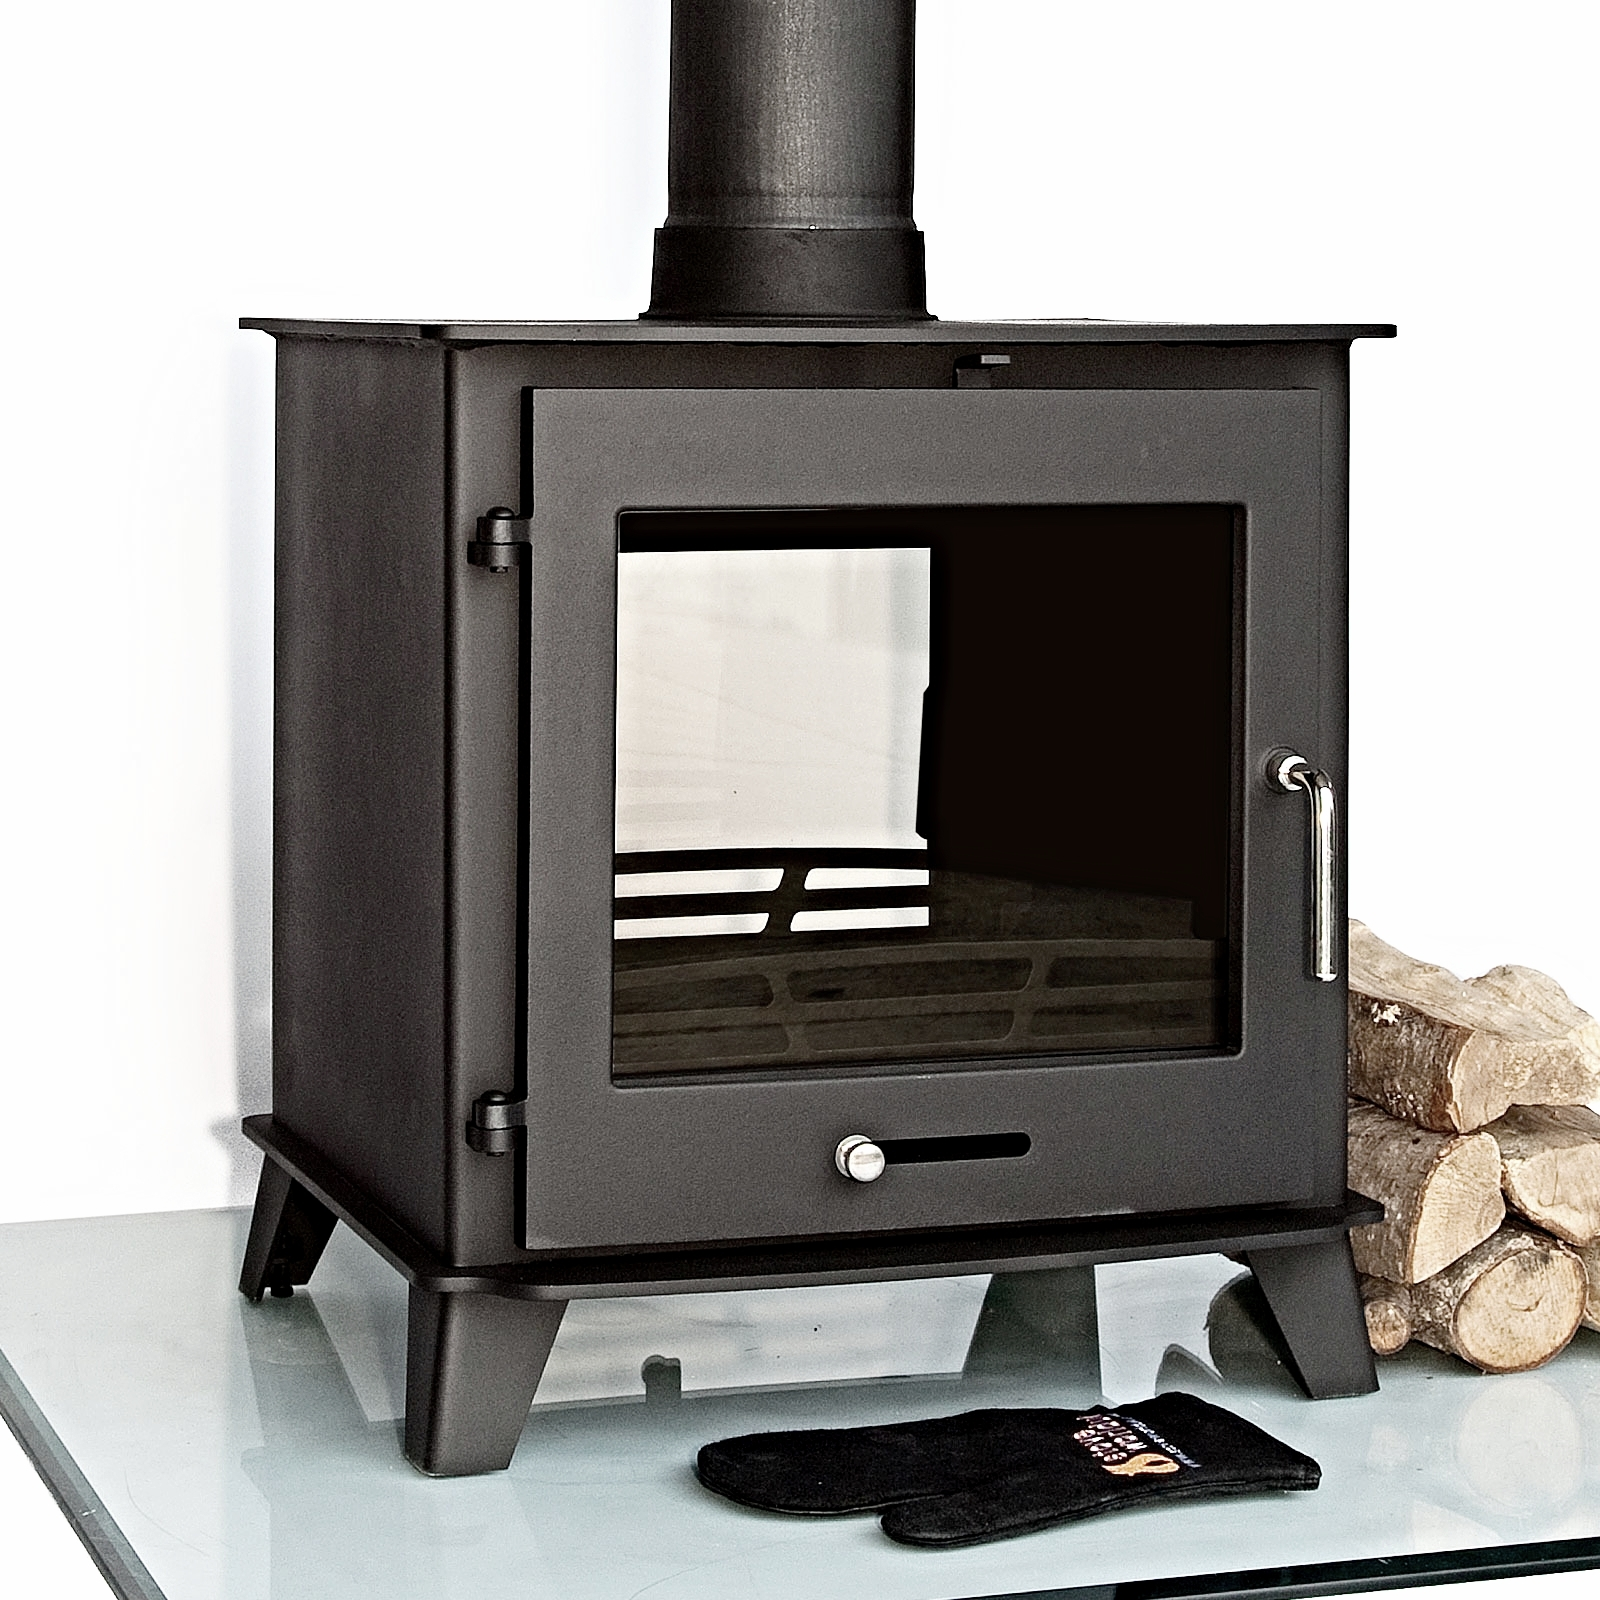 Double sided multi fuel stove